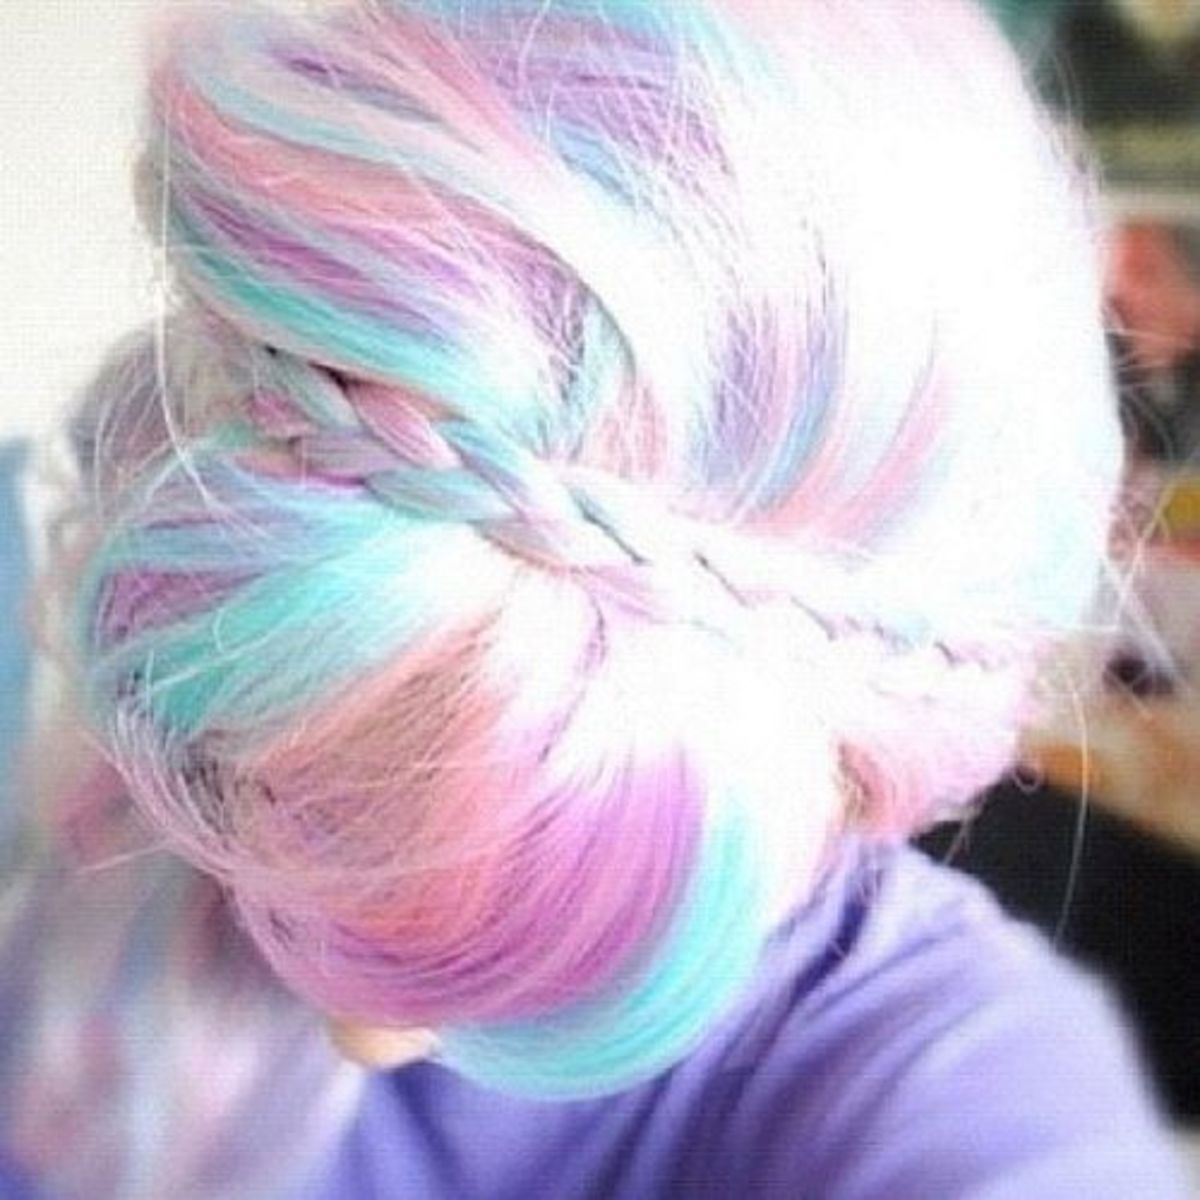 Hair Chalk: How to Use It Remove It